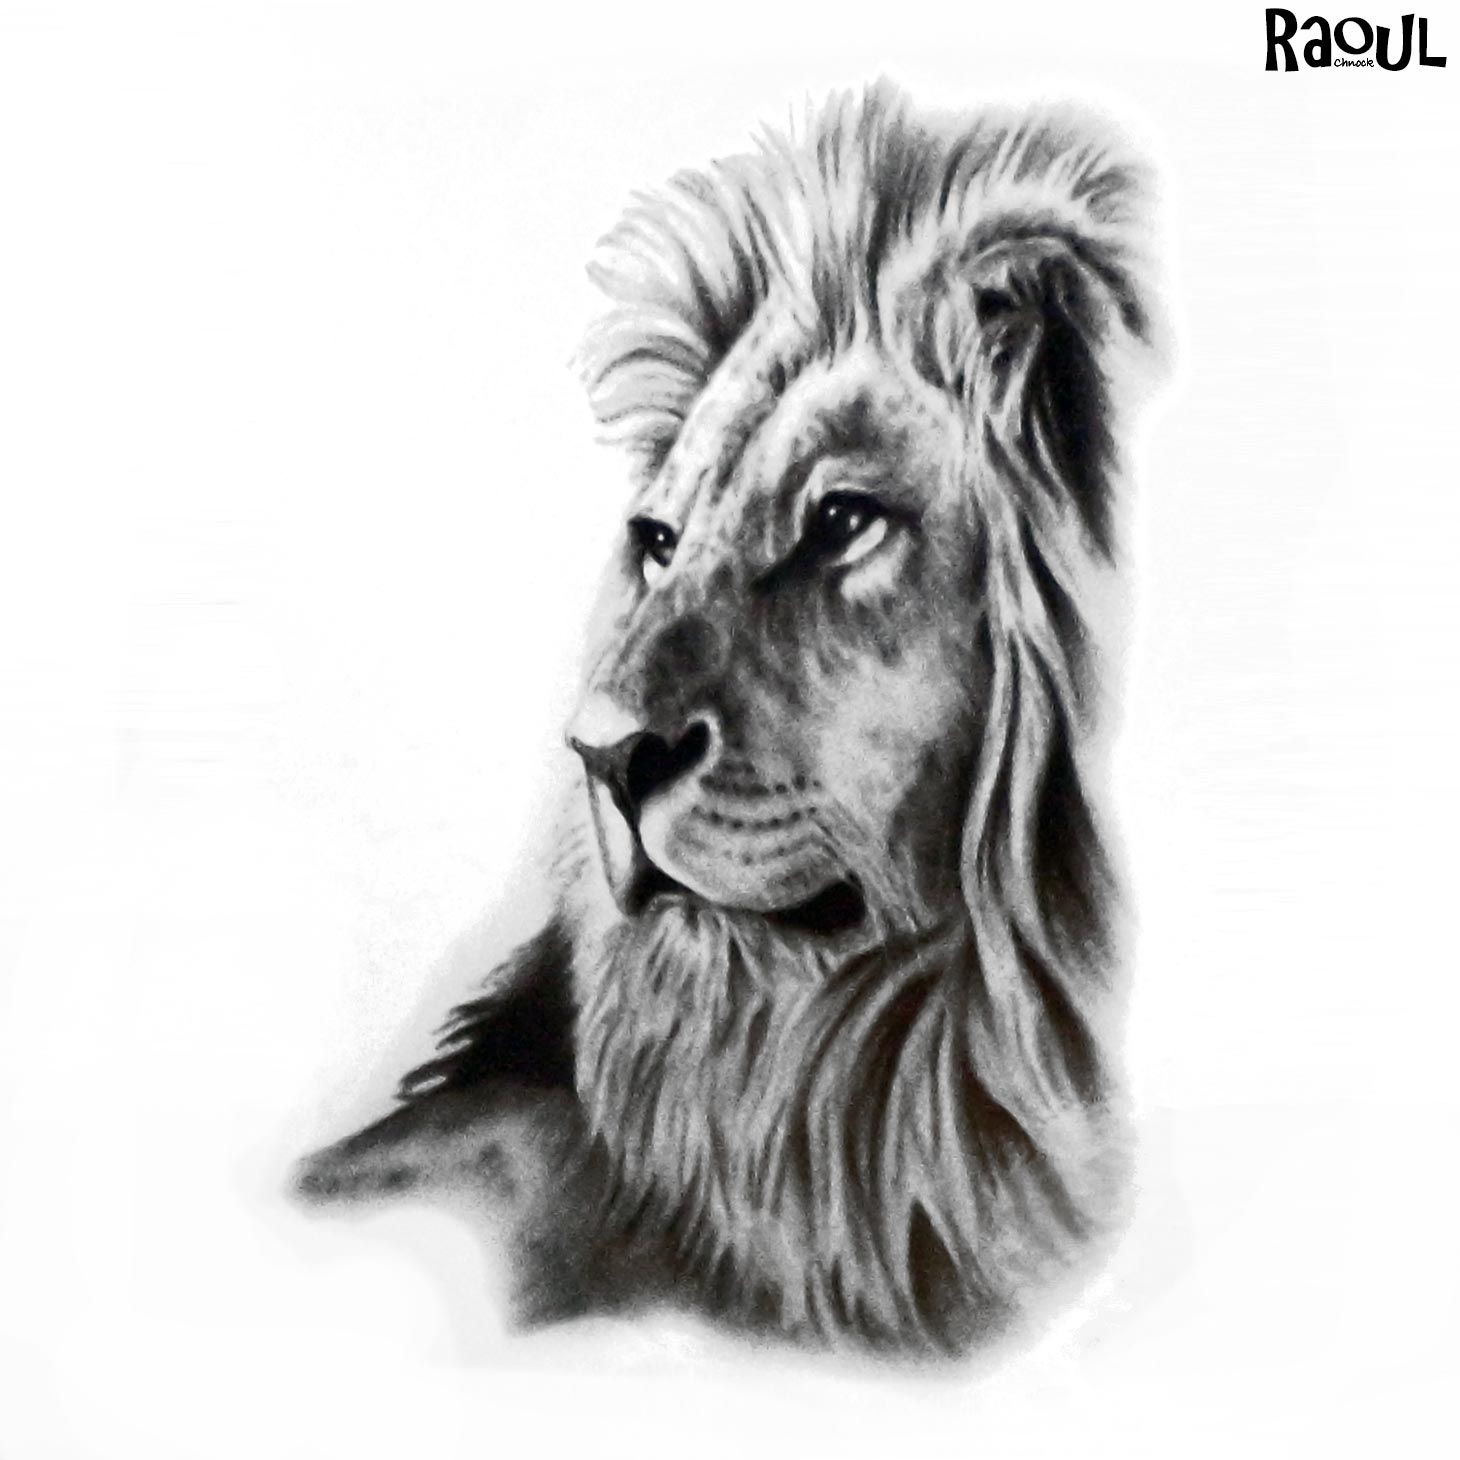 tatouage ph m re d 39 un lion avec coiffe raoul chnock. Black Bedroom Furniture Sets. Home Design Ideas